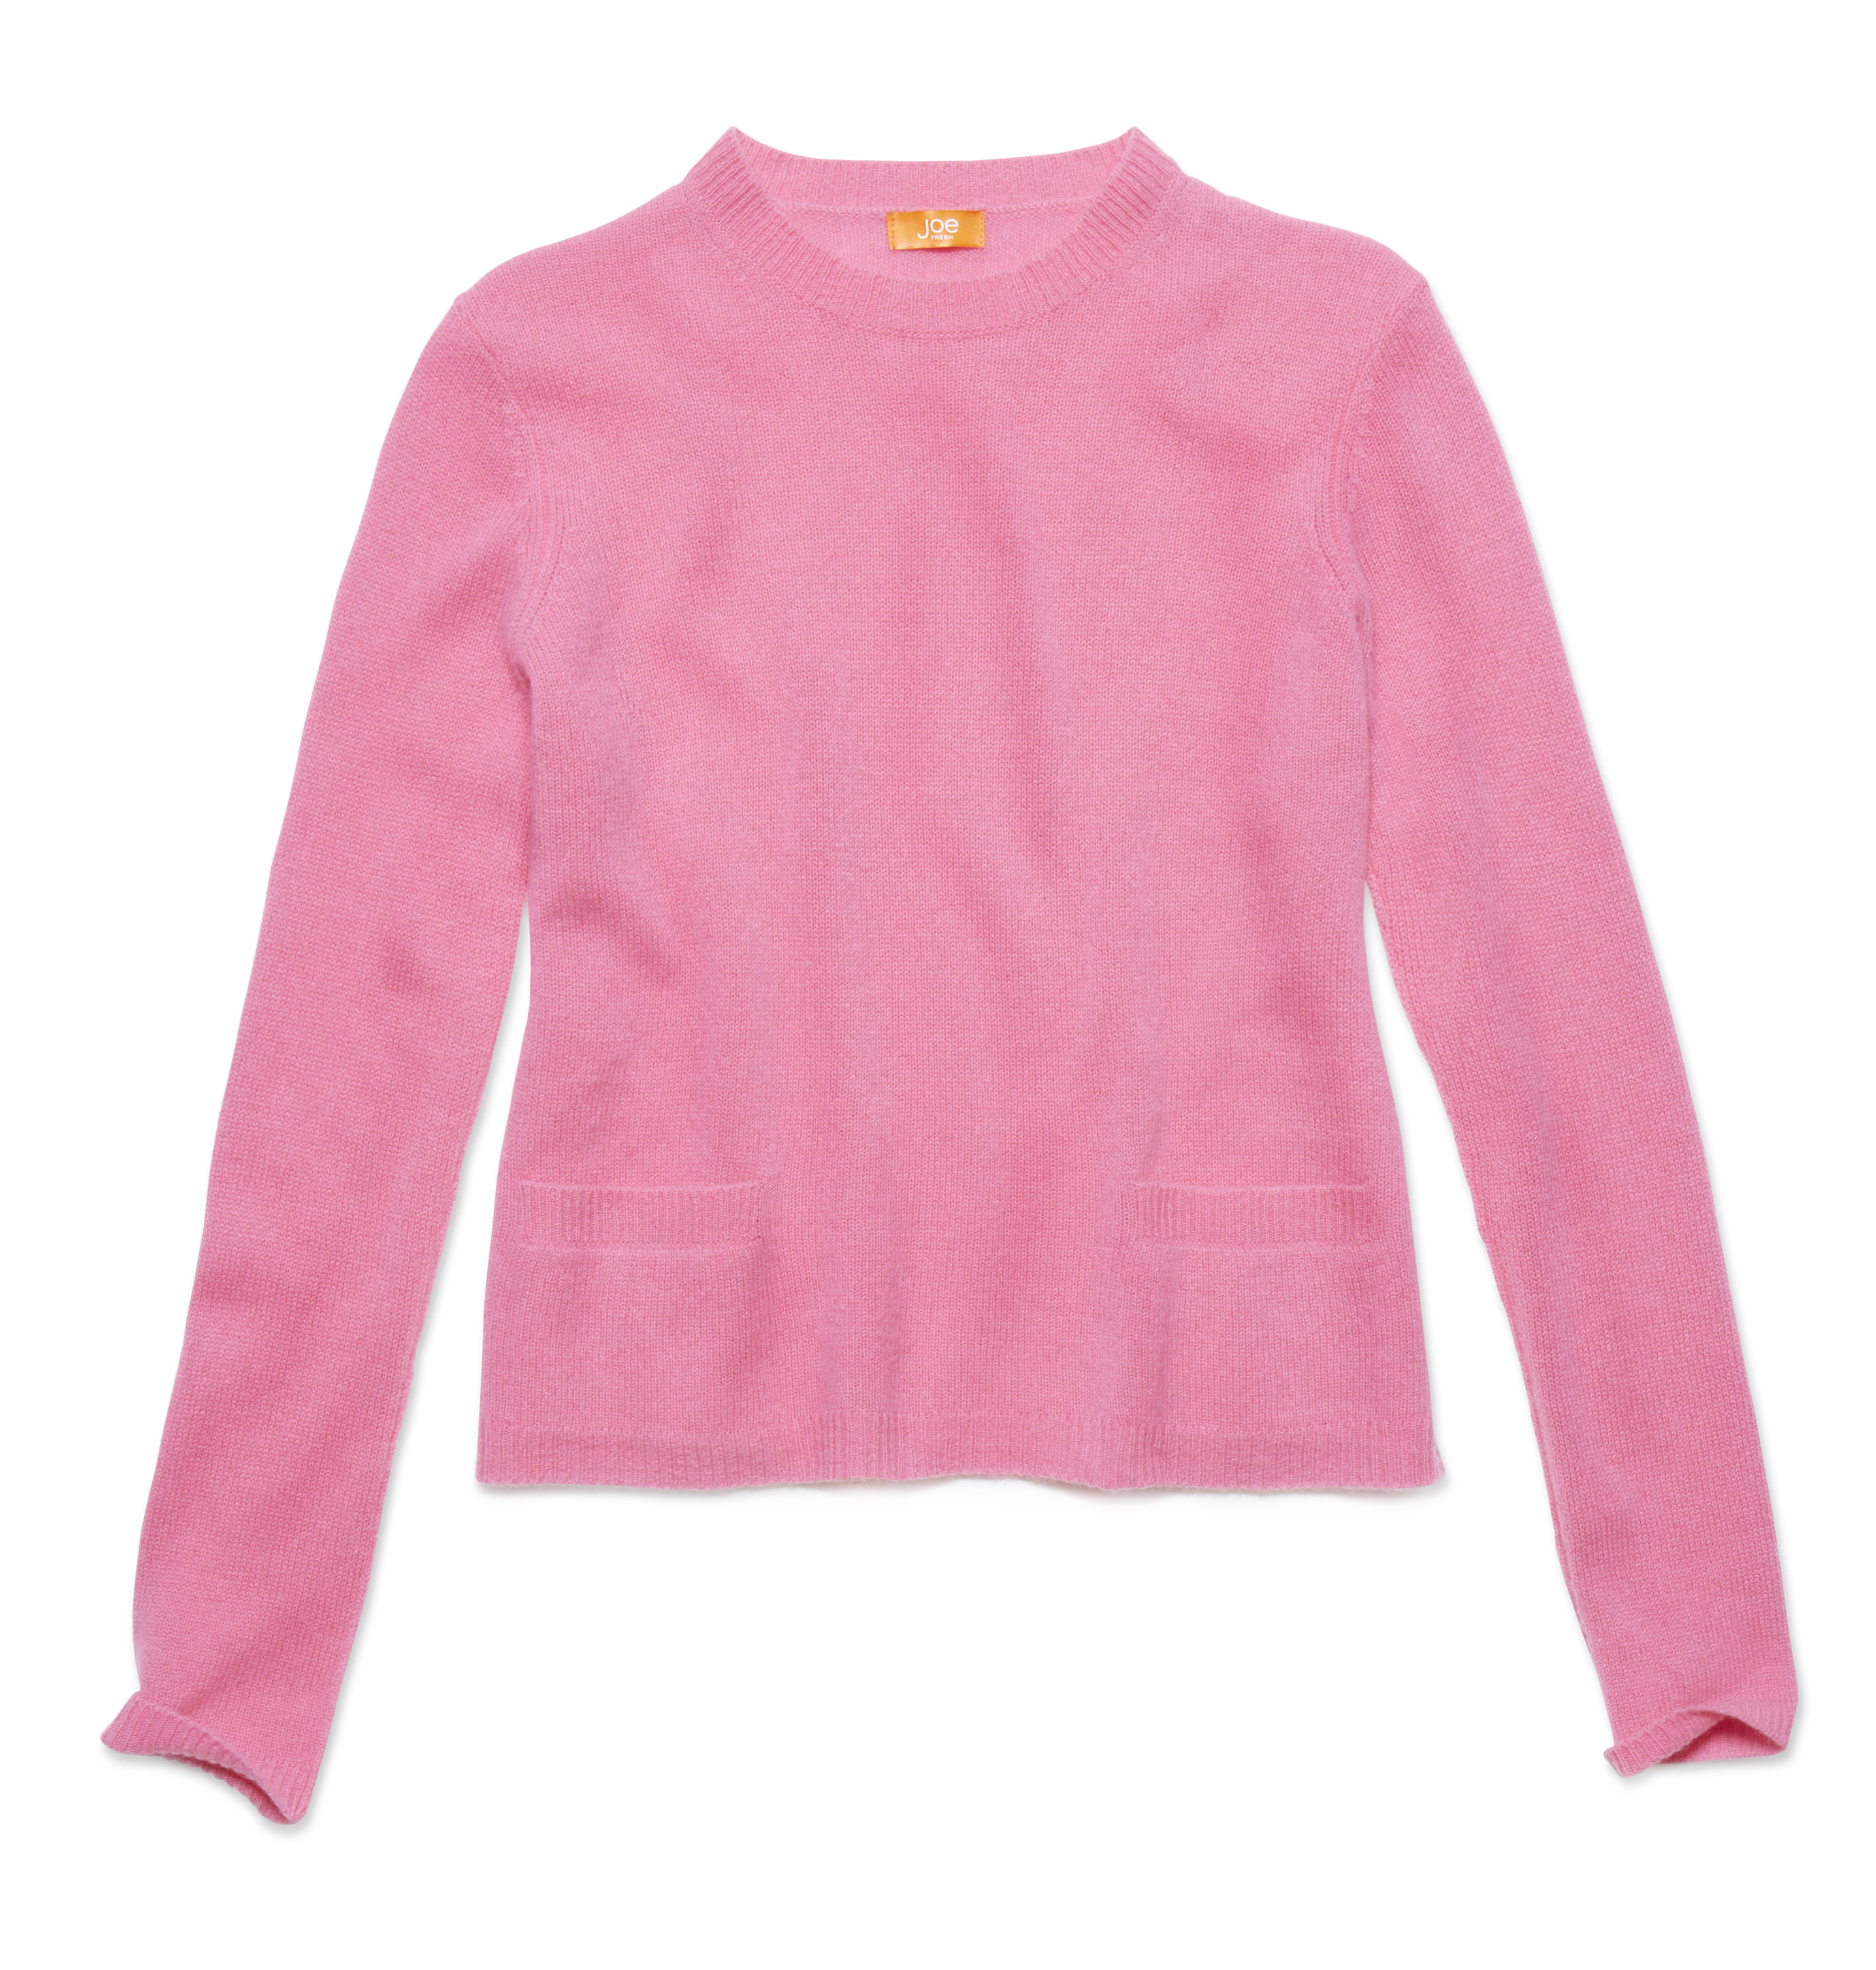 Women Tops Cashmere Crewneck Sweater High-res